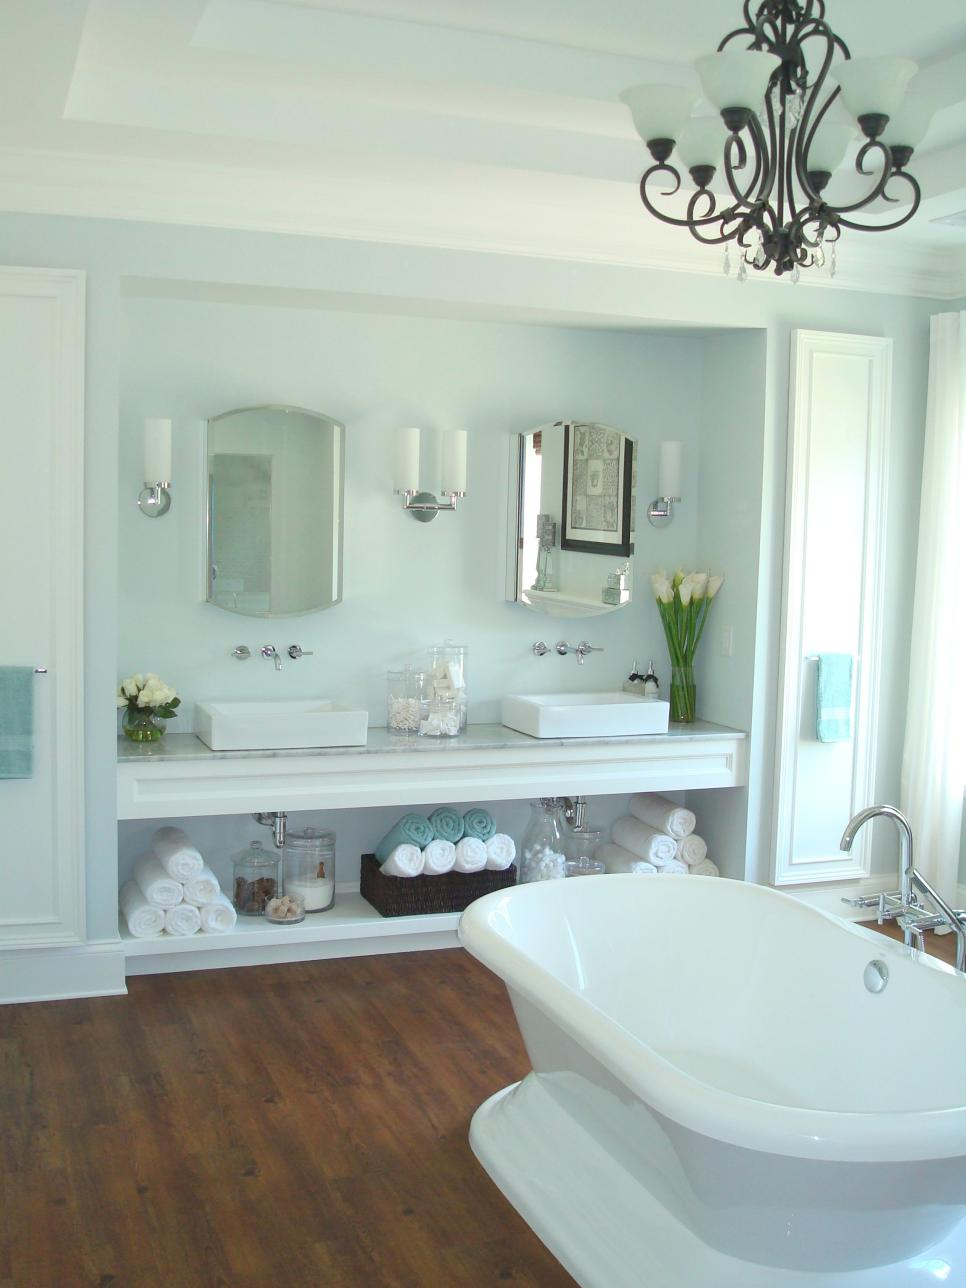 Bathroom vanities for any style hgtv Double vanity ideas bathroom